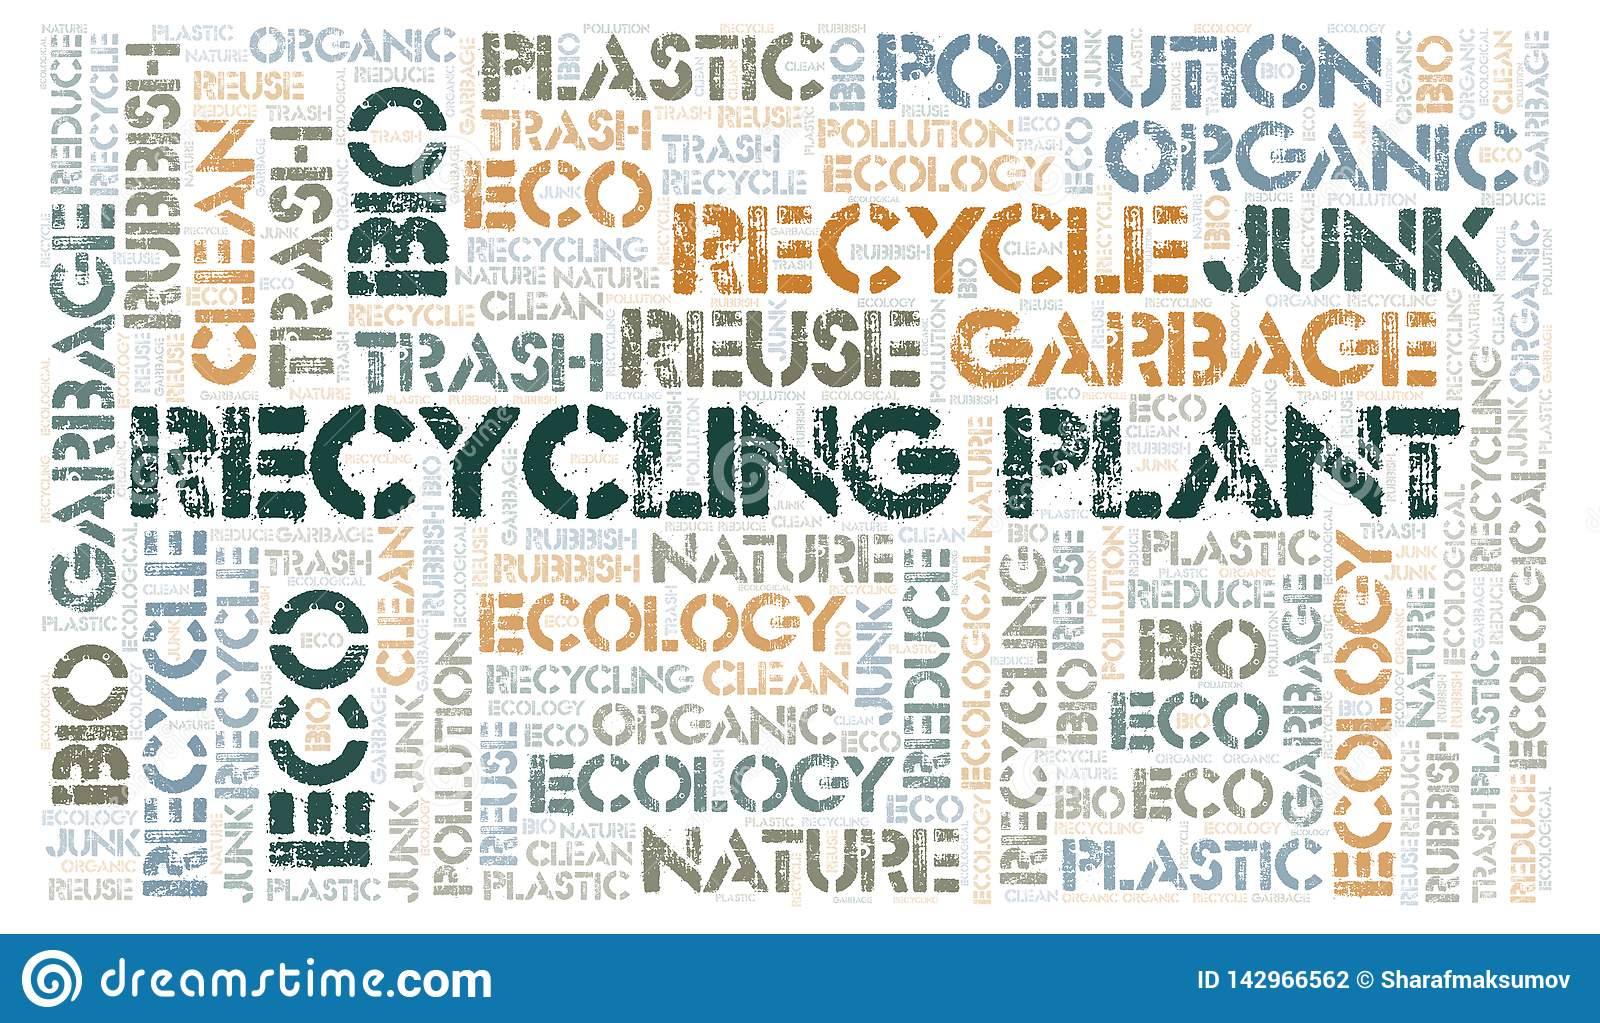 Recycling Plant word cloud